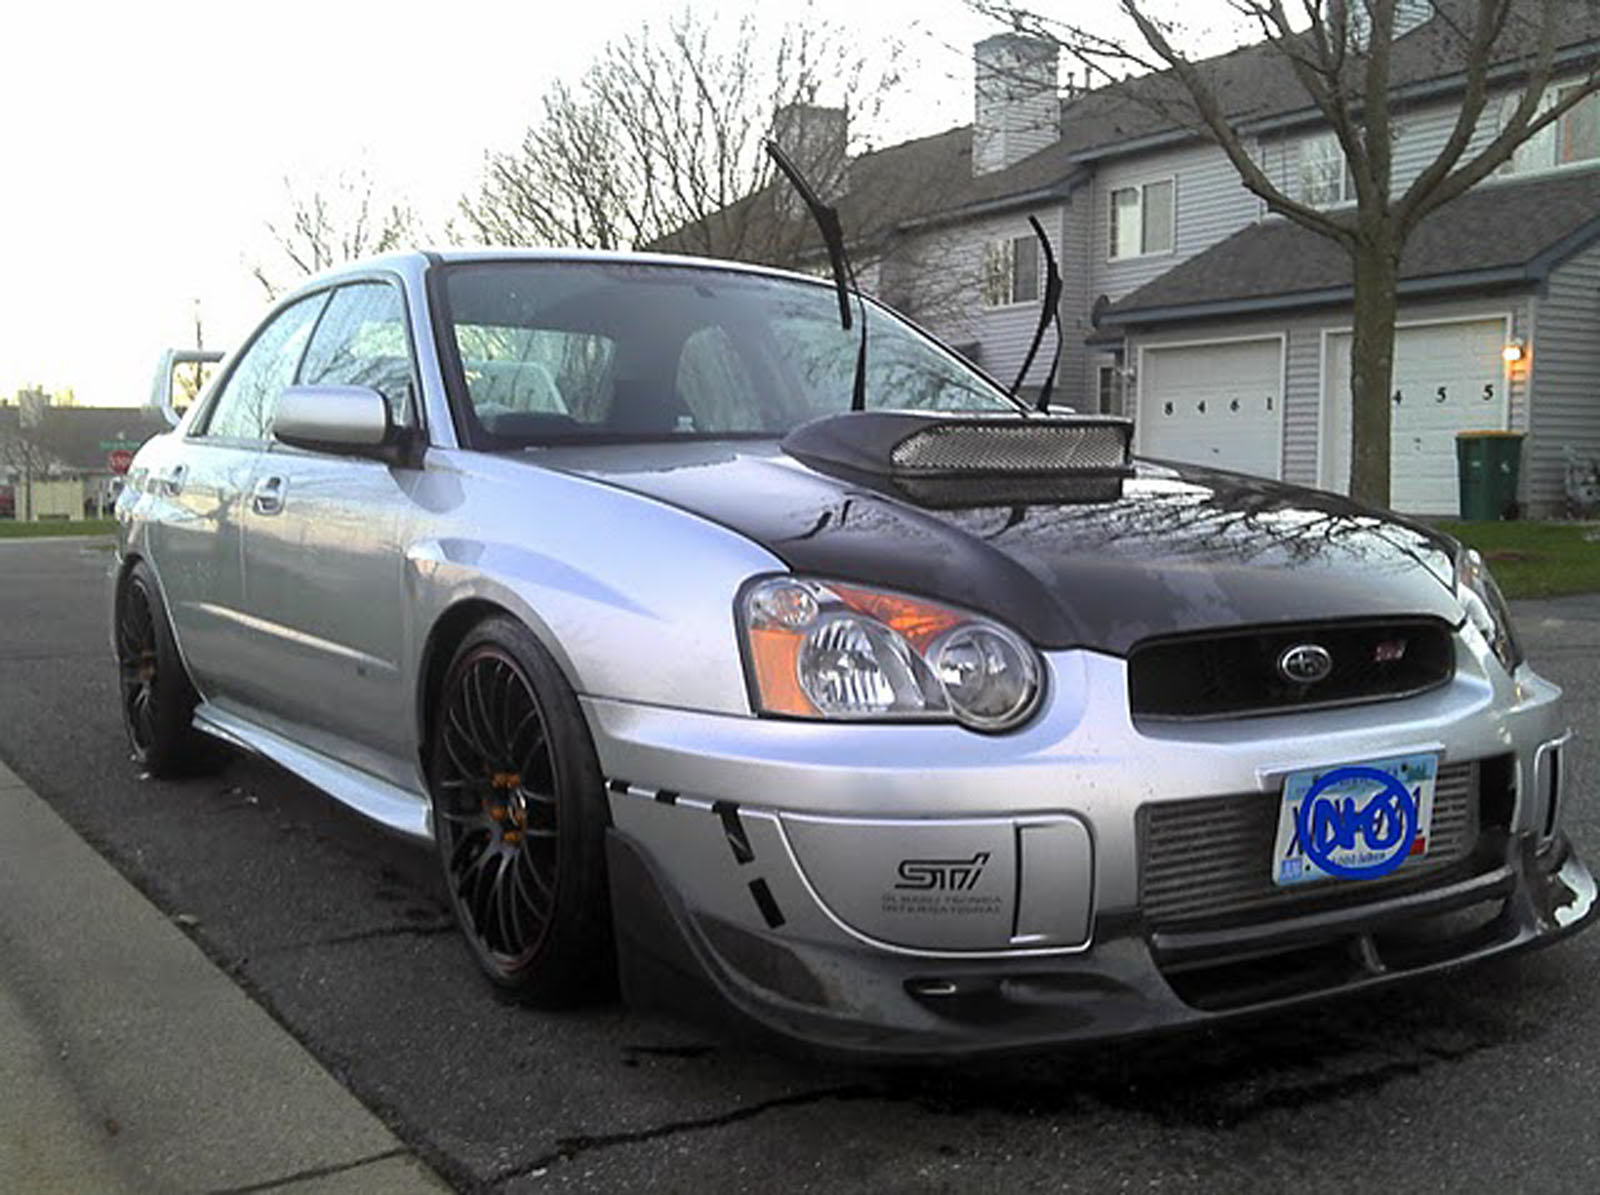 2004 subaru impreza sti for sale minnesota. Black Bedroom Furniture Sets. Home Design Ideas